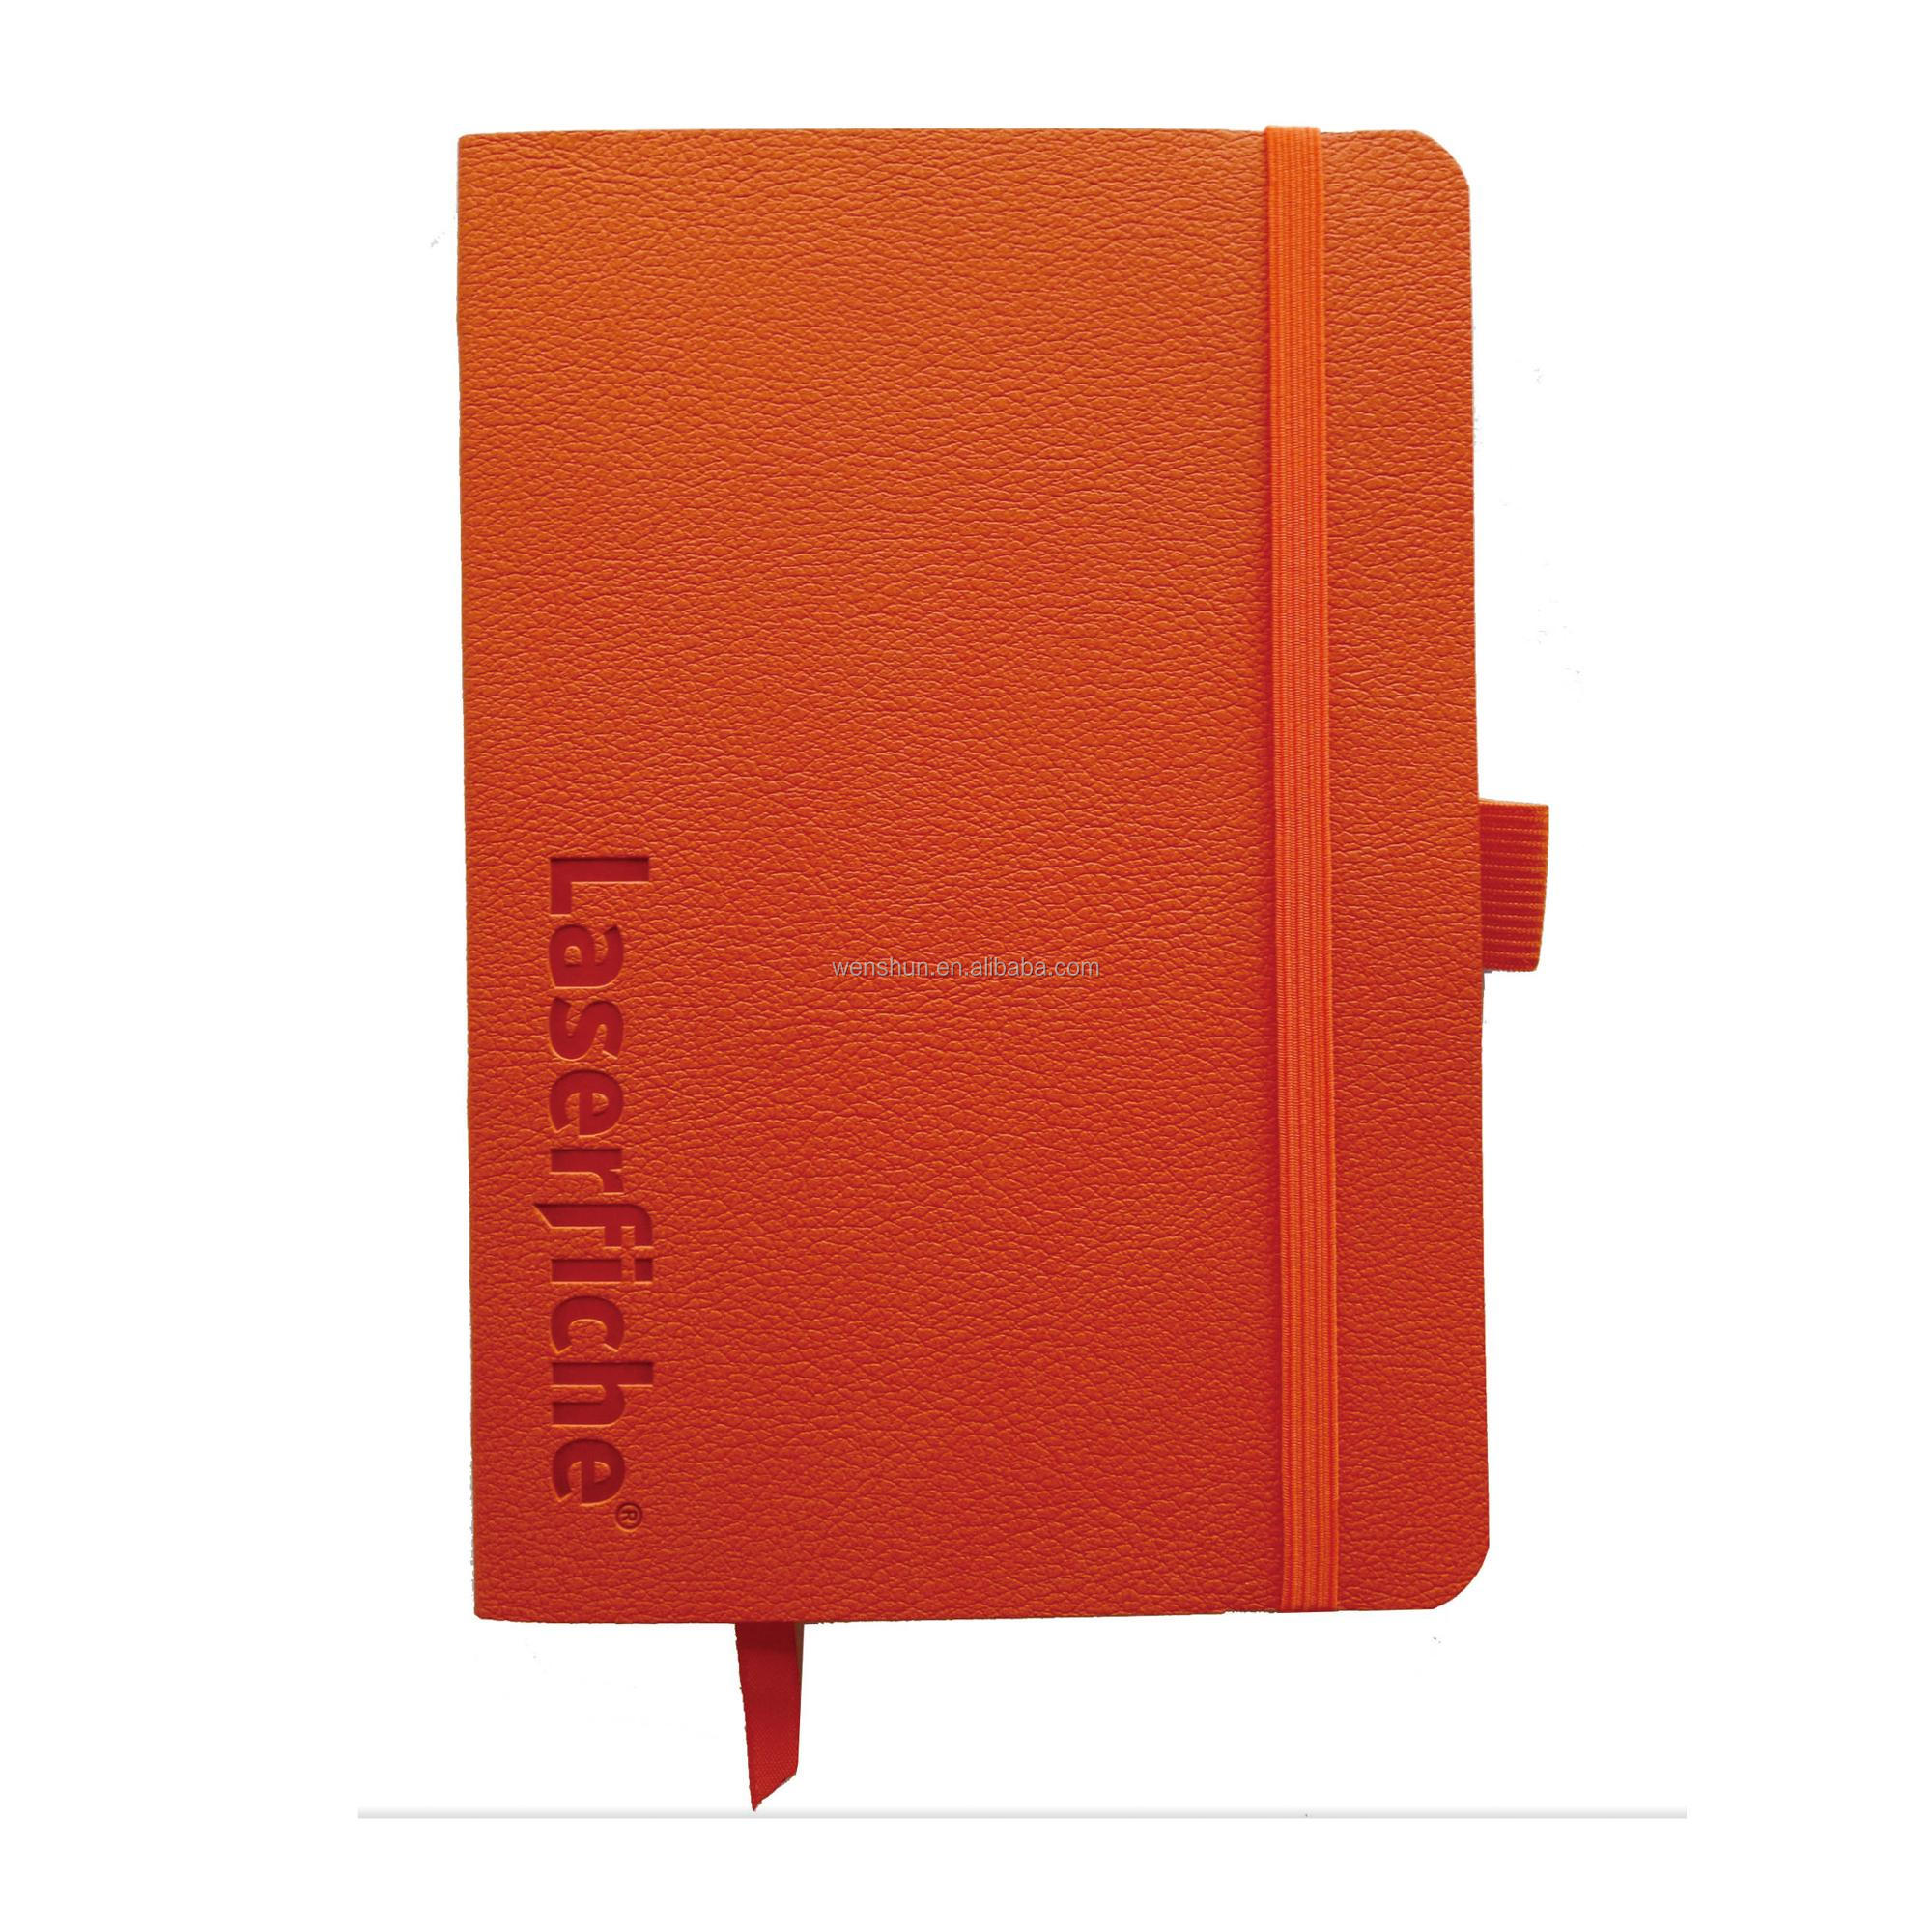 2020 New Arrivals Soft Cover A5 Leather Journal Notebook